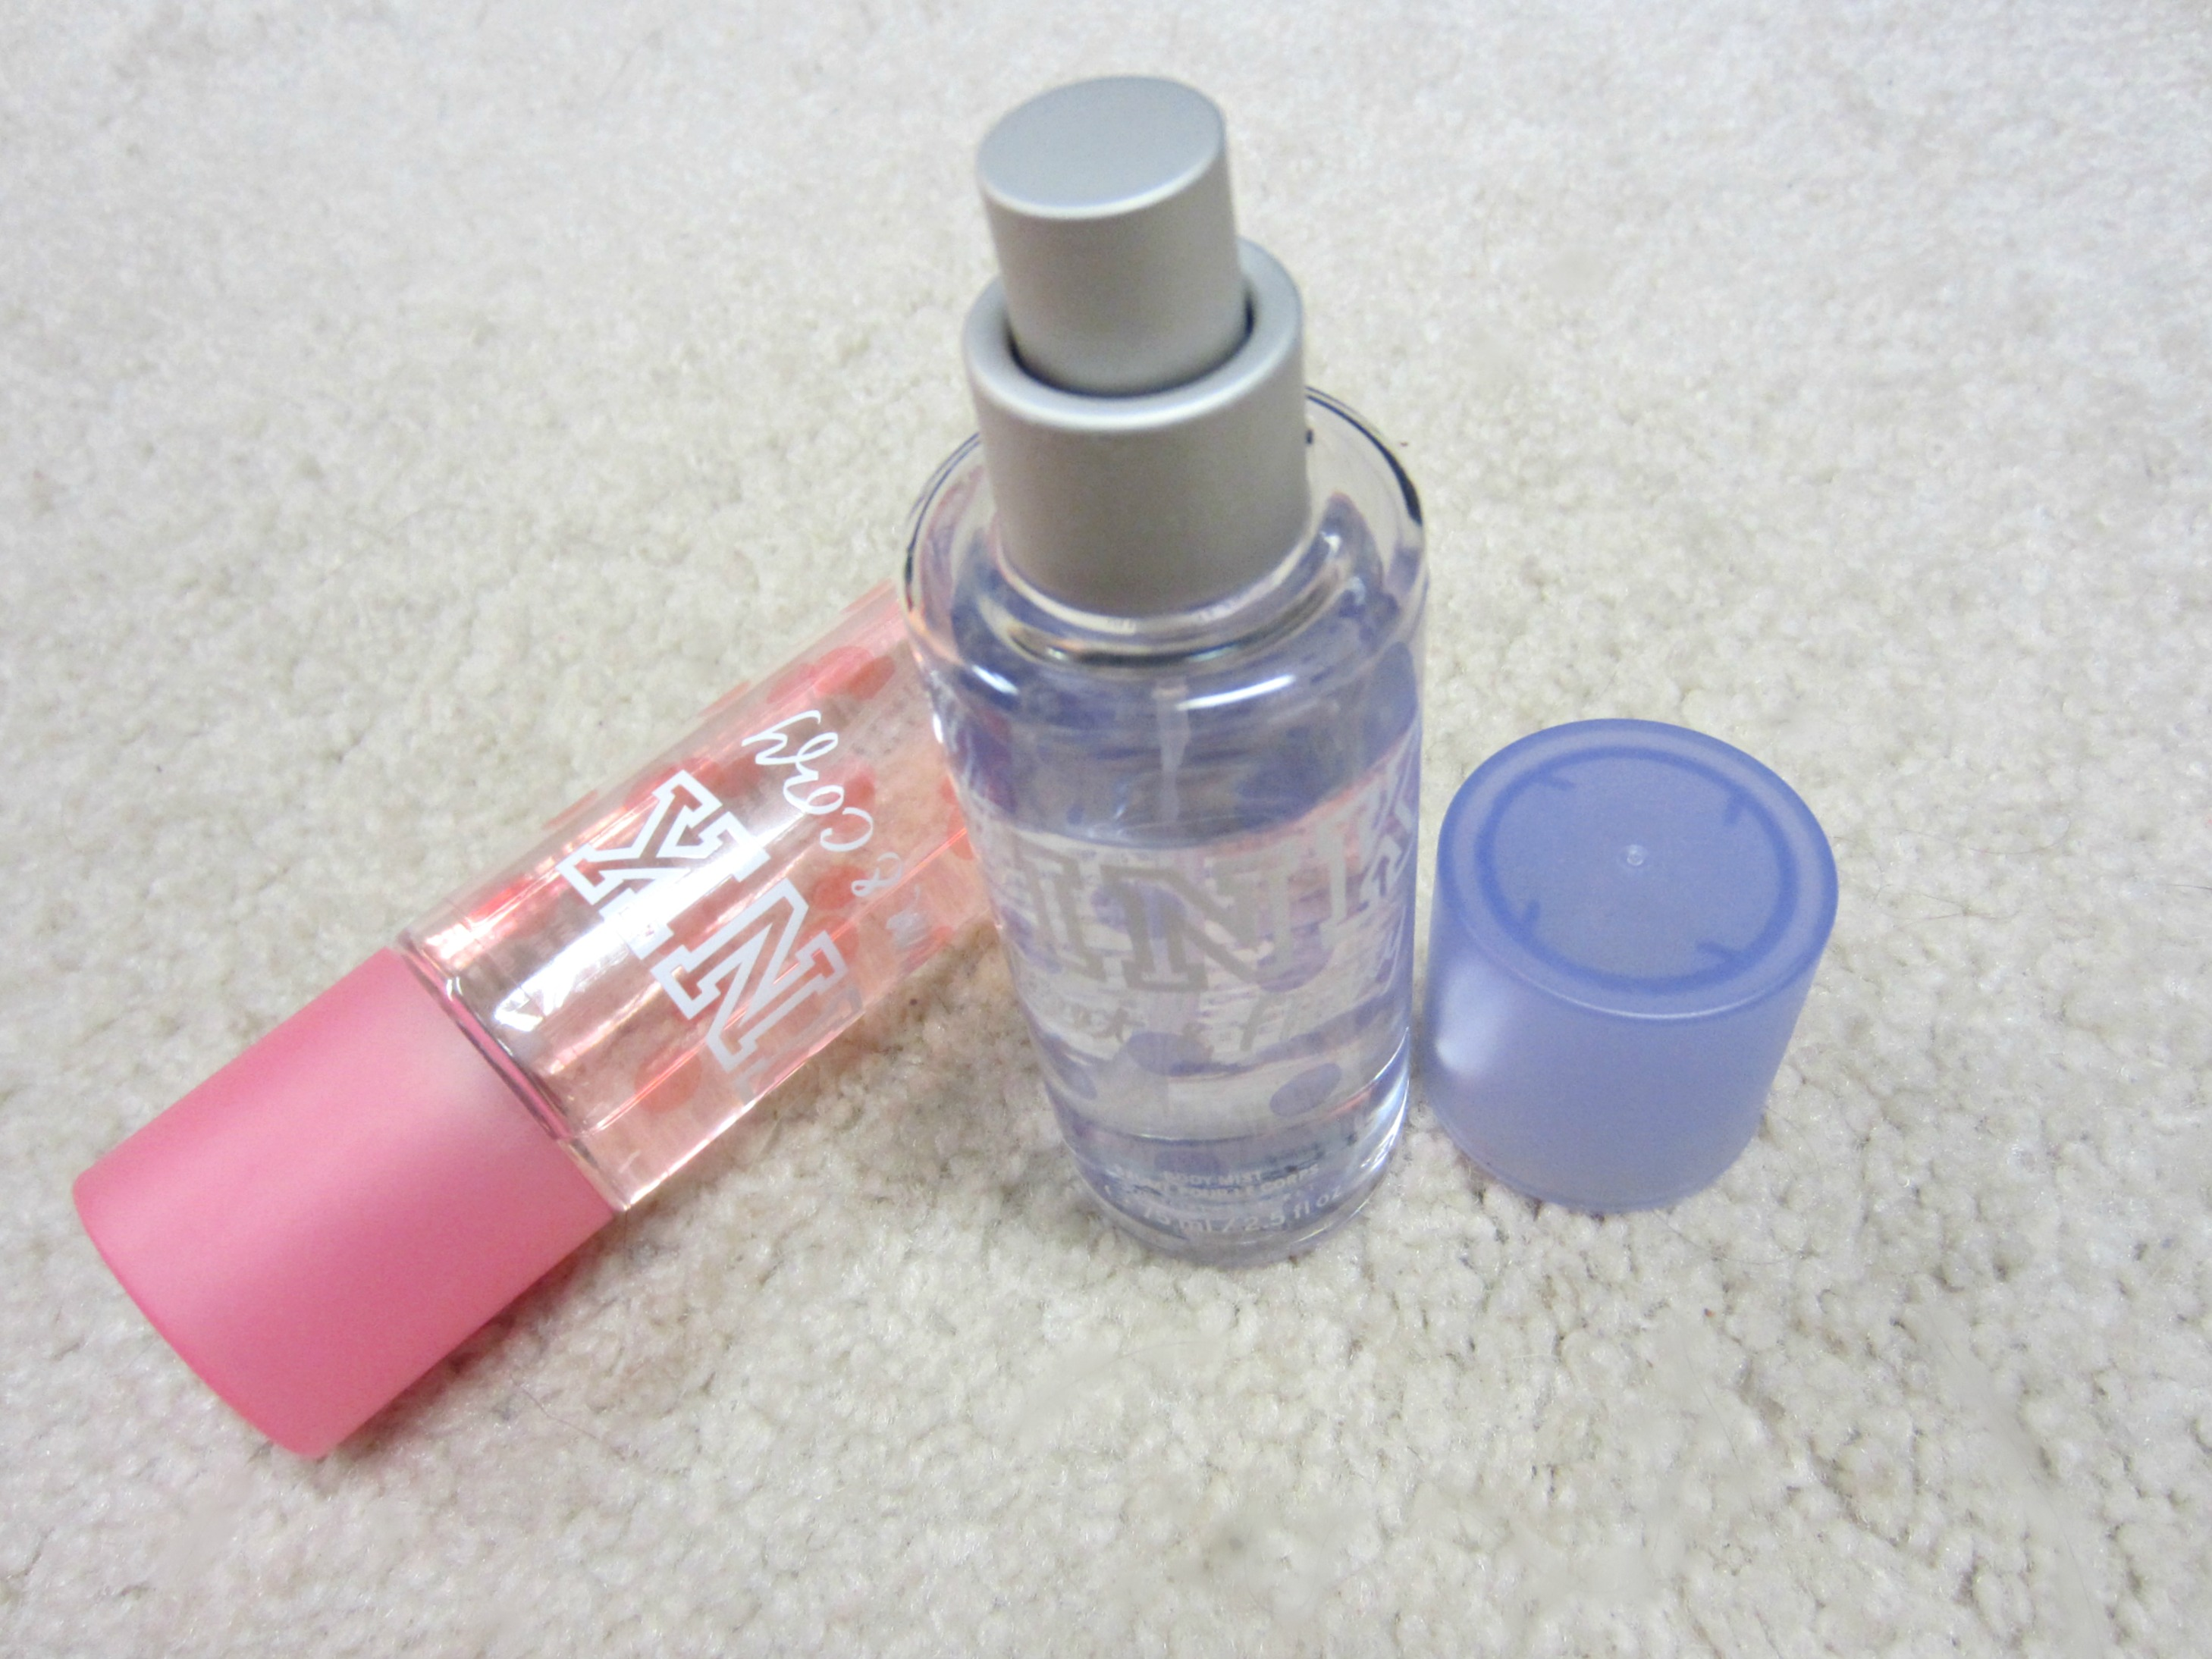 PINK body sprays